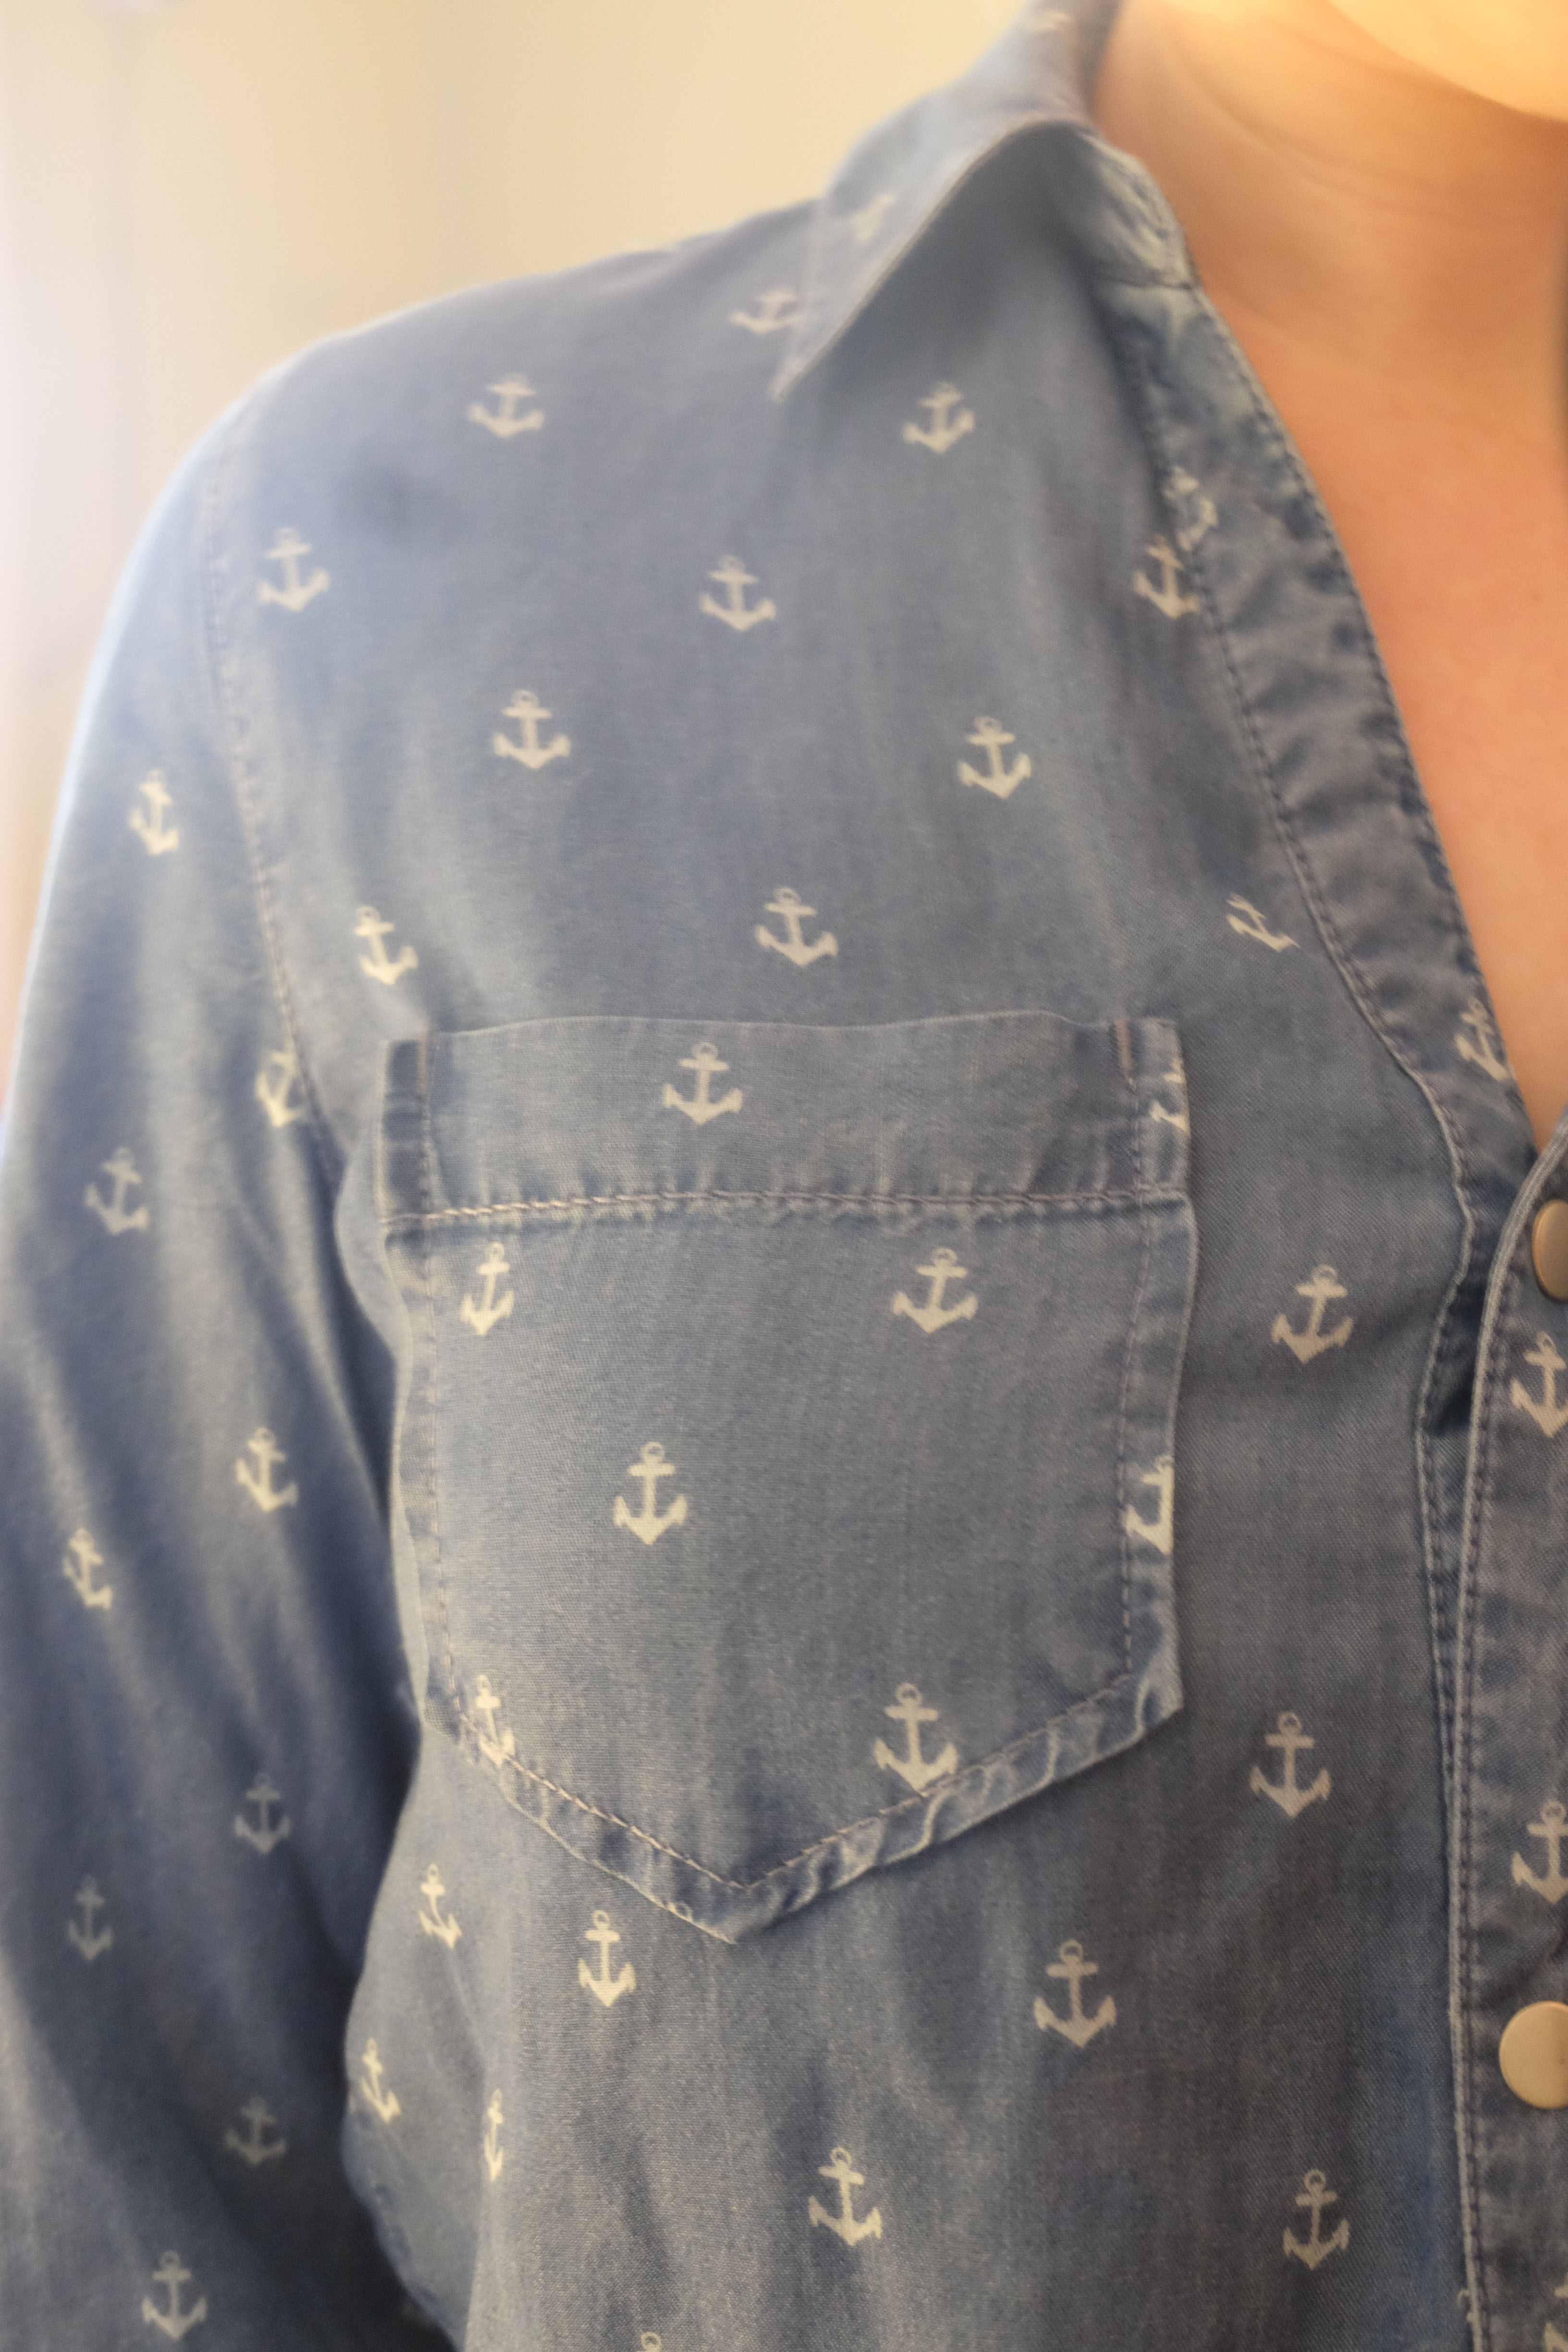 While This Shirt Was Very Soft And The Cut Flattering, The Combination Of  Both The Chambray And Anchor Print Made This Shirt Just Too Preppy For My  Taste.